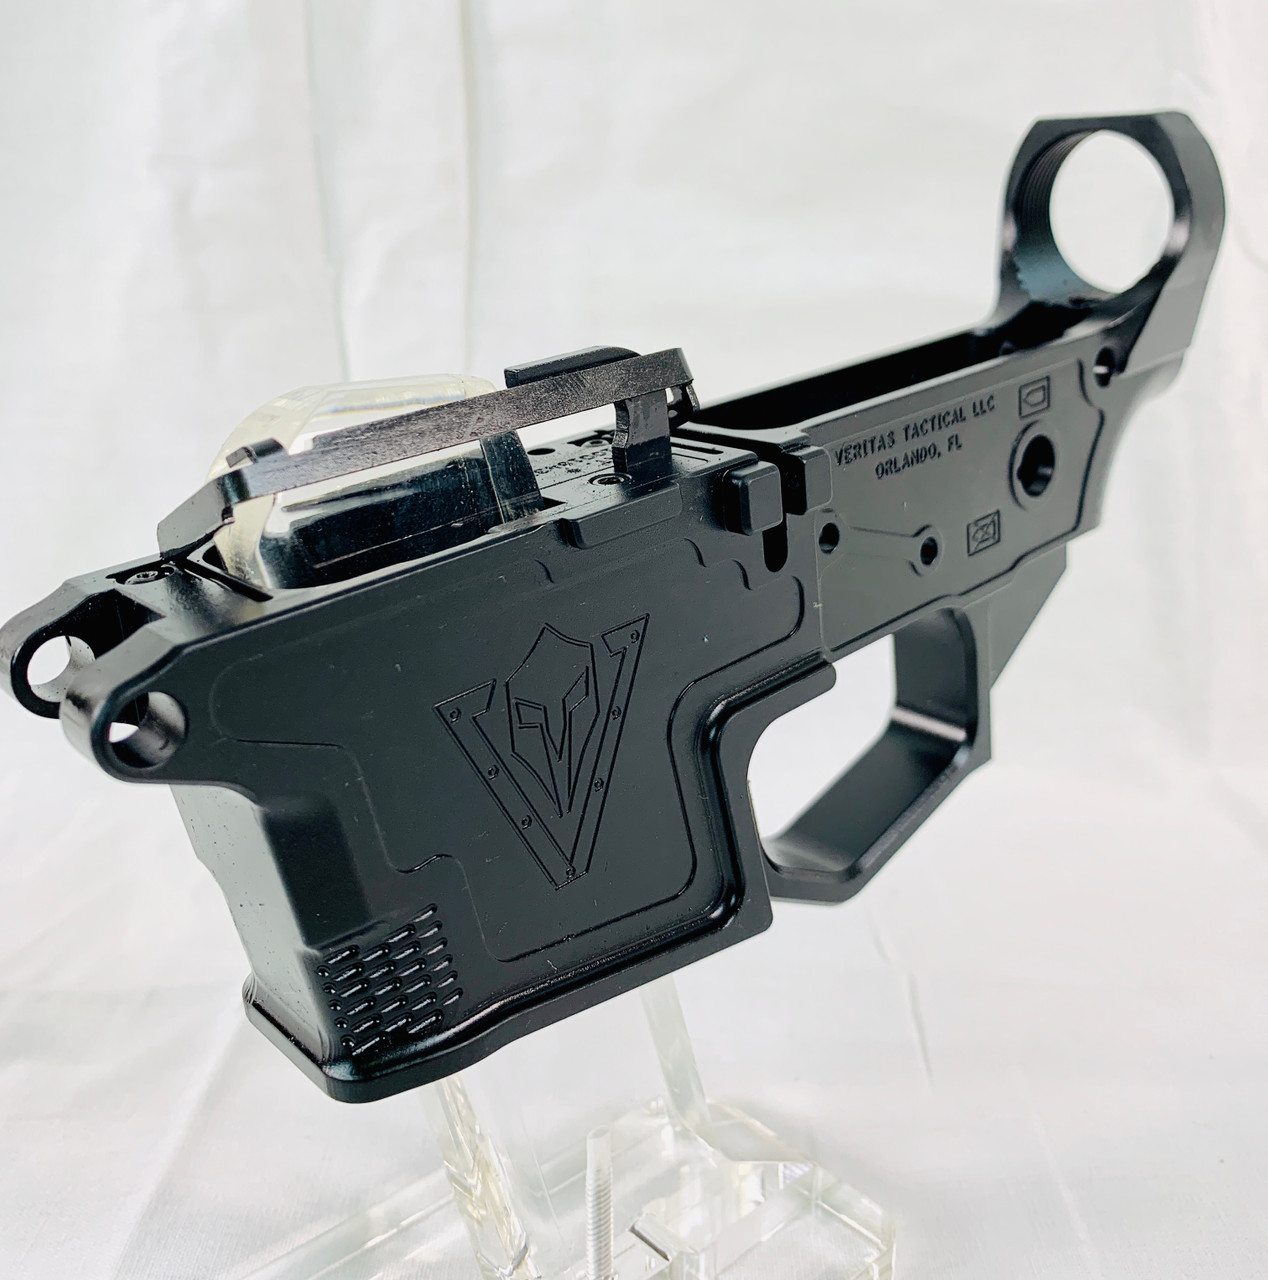 VT94 - Billet 9mm Lower Receiver